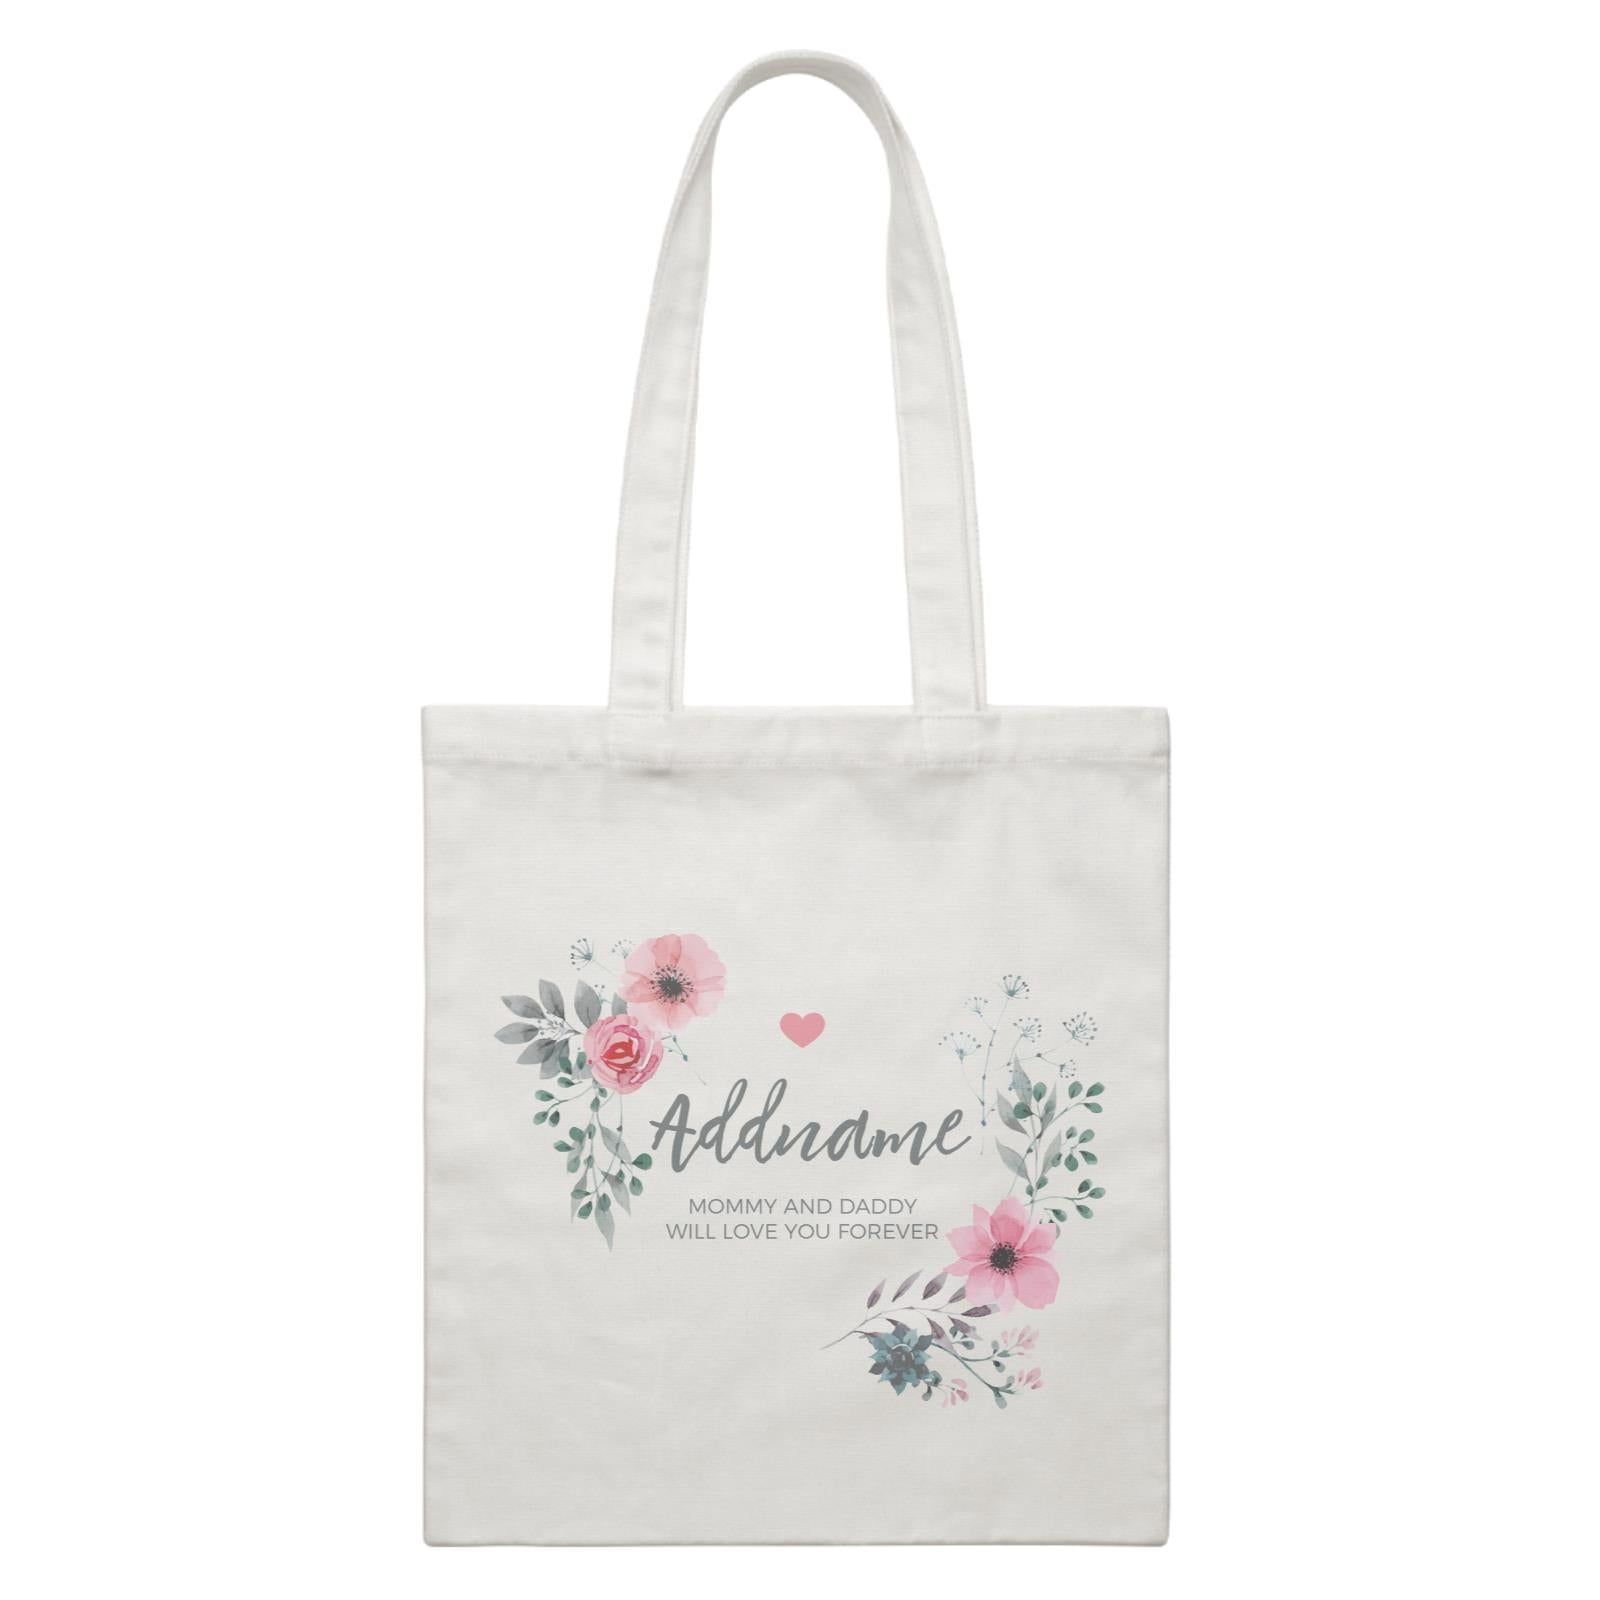 Watercolour Pink Flowers and Dark Wreath Personalizable with Name and Text White Canvas Bag